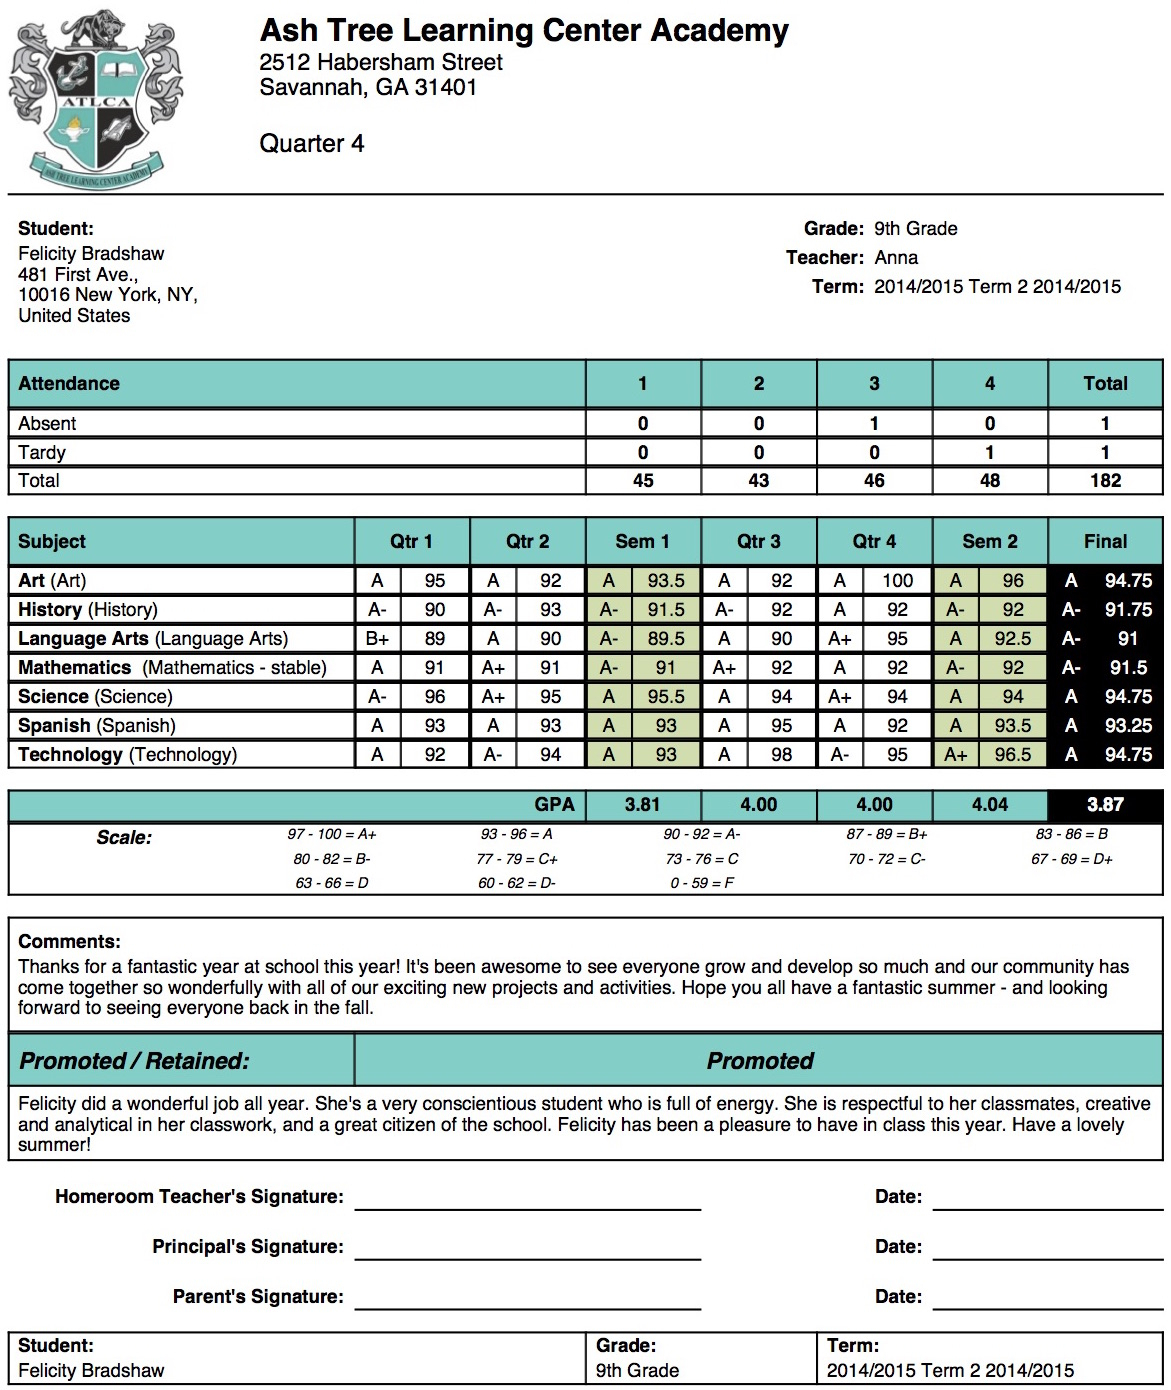 Ash Tree Learning Center Academy Report Card Template With Regard To High School Student Report Card Template